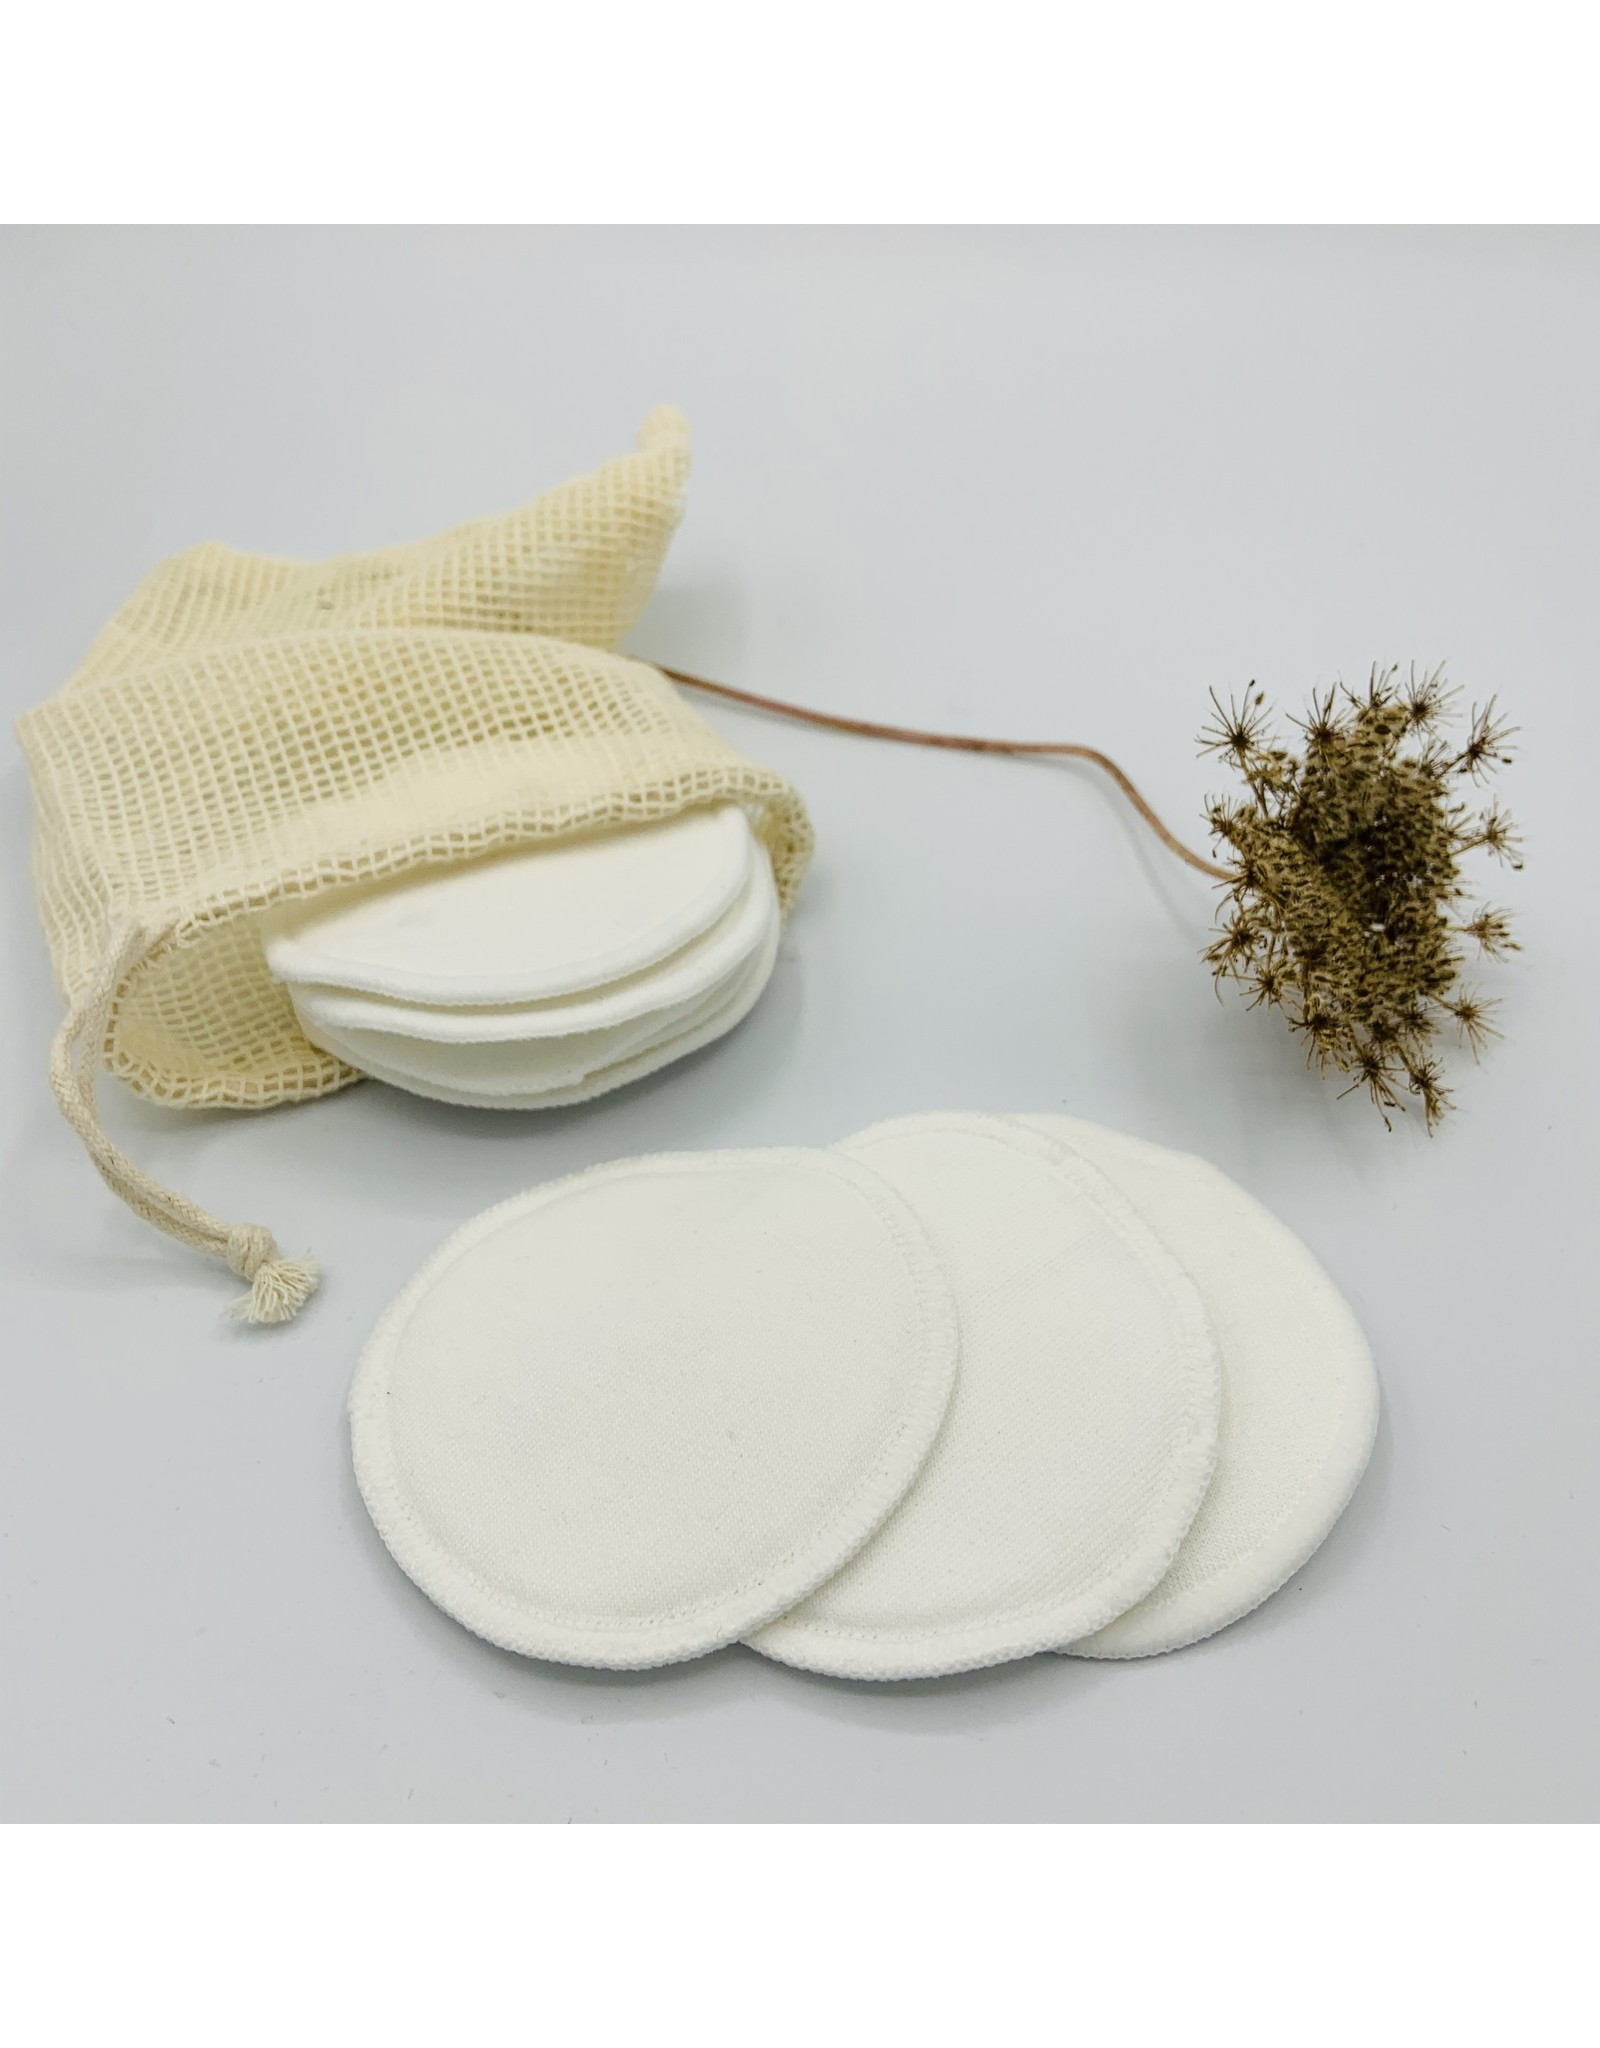 EcoFillosophy Reusable Cotton Facial Rounds